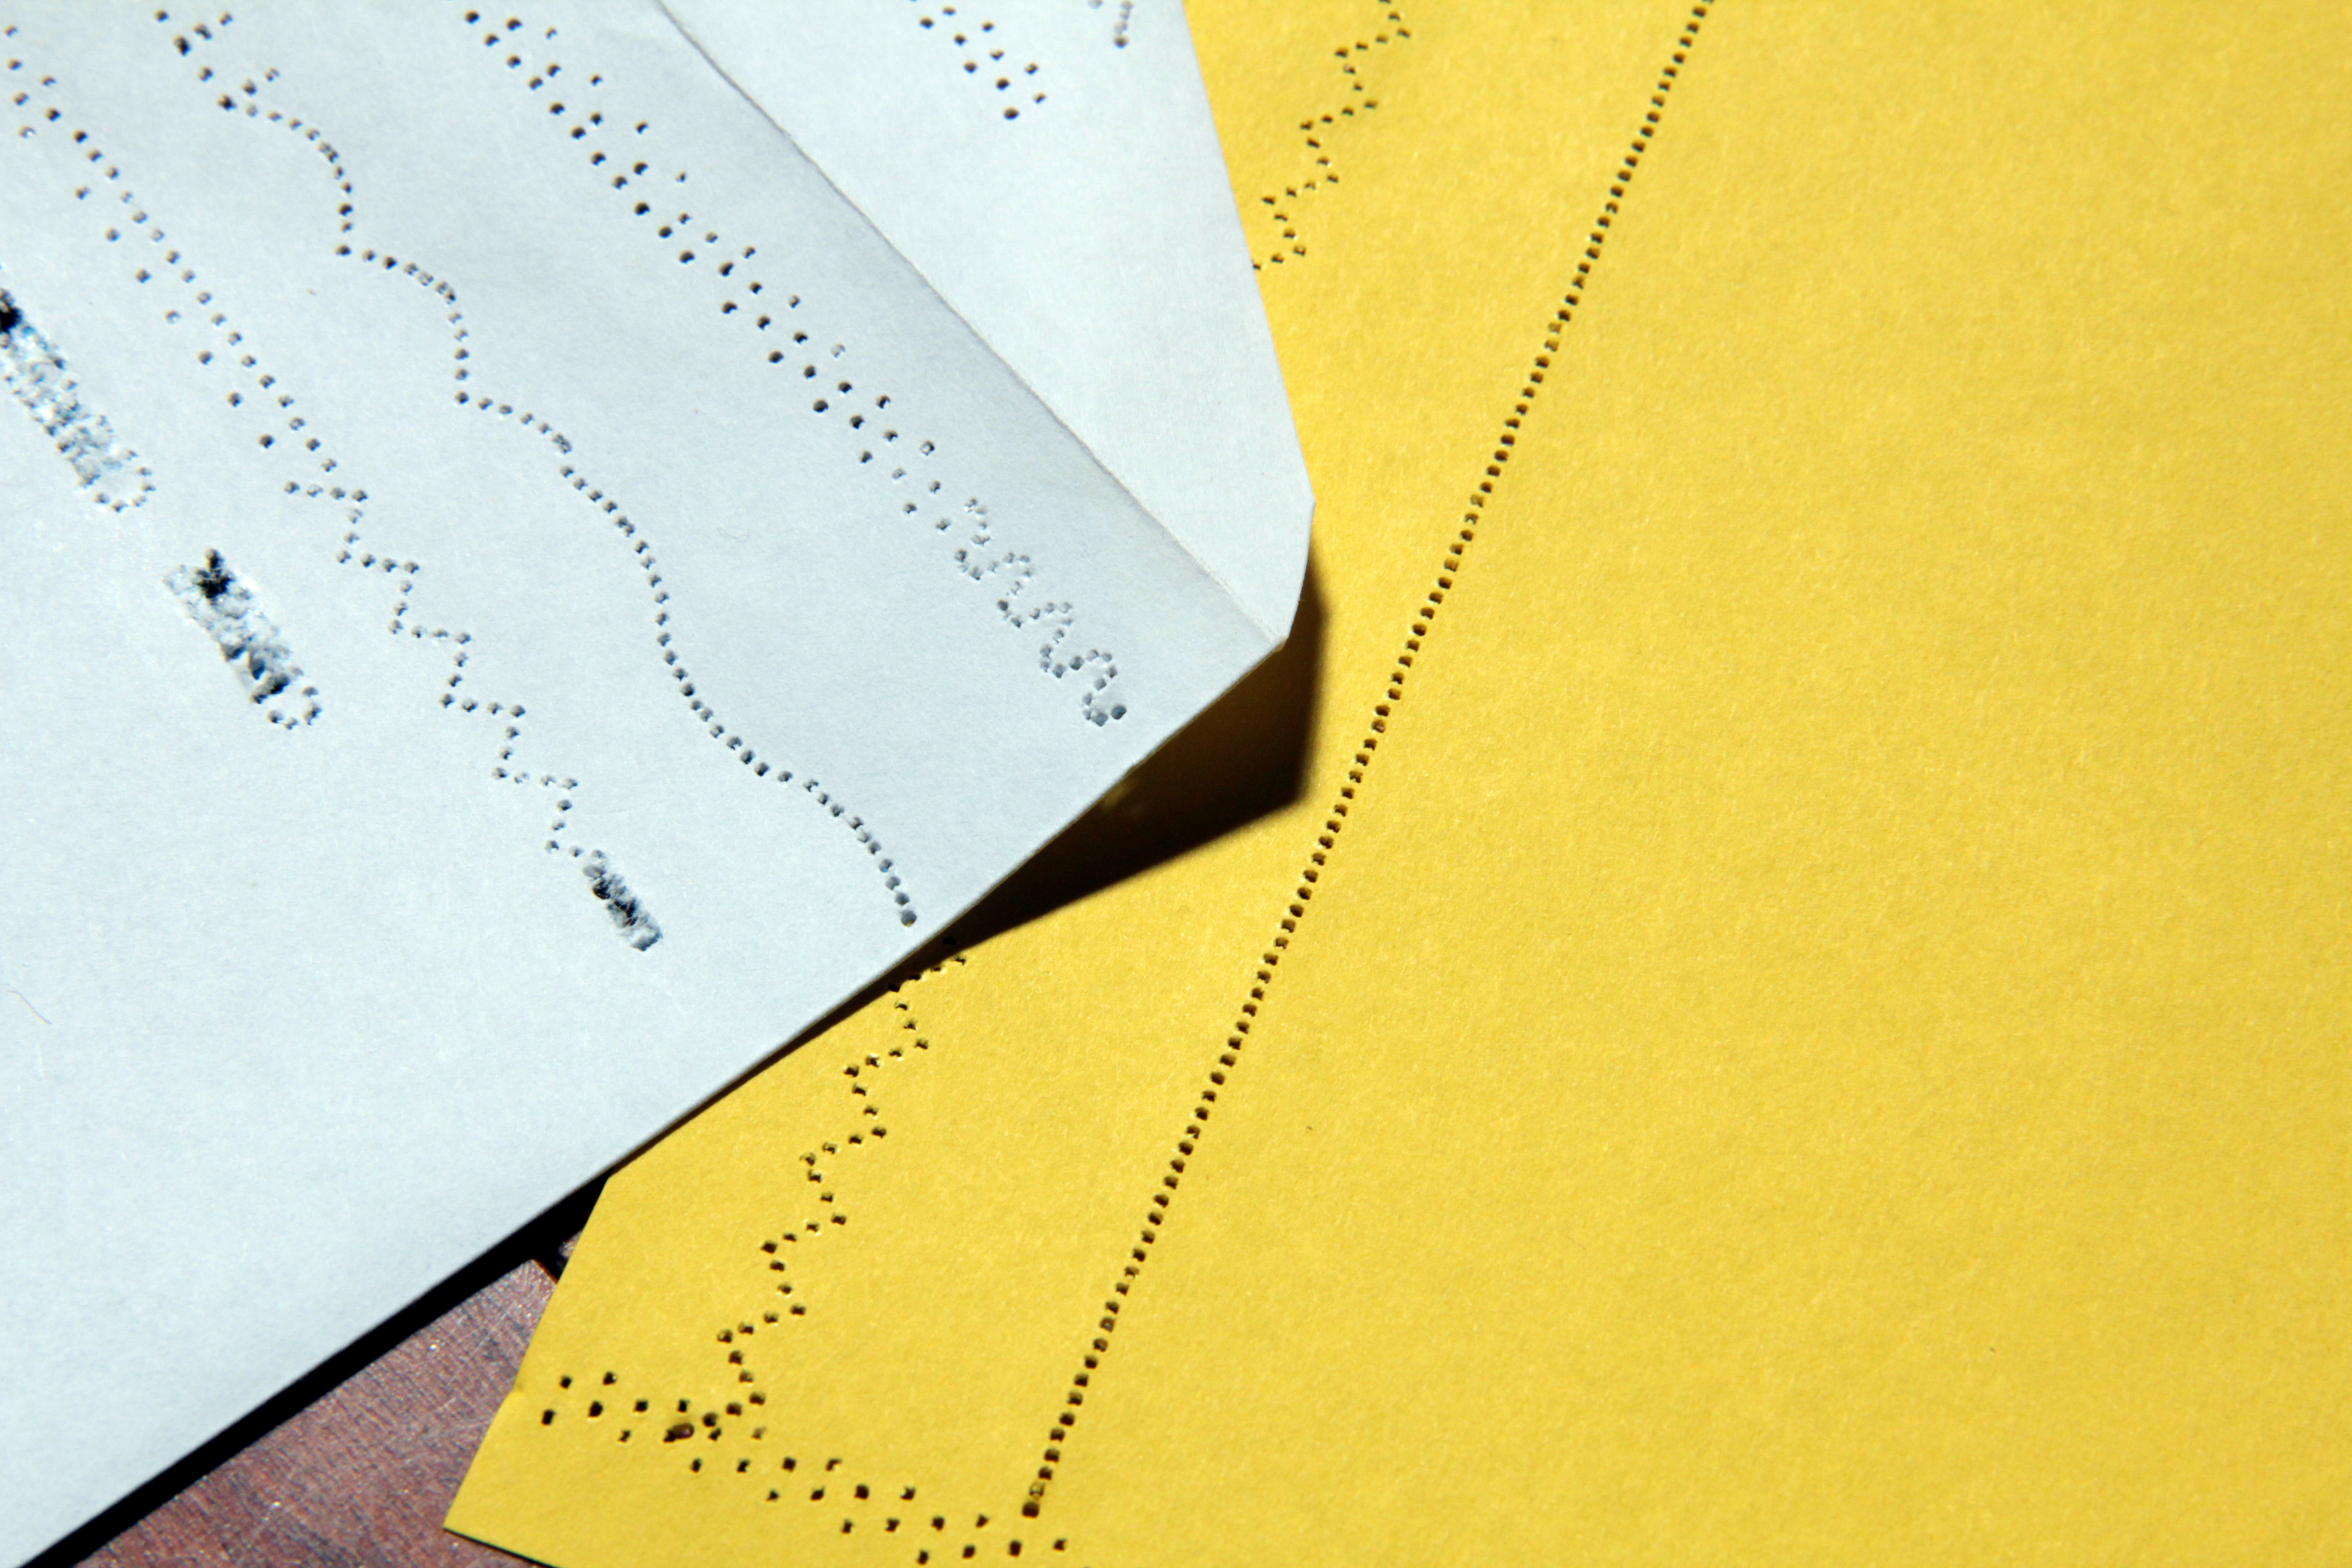 Fancy Paper Perforations with a Sewing Machine